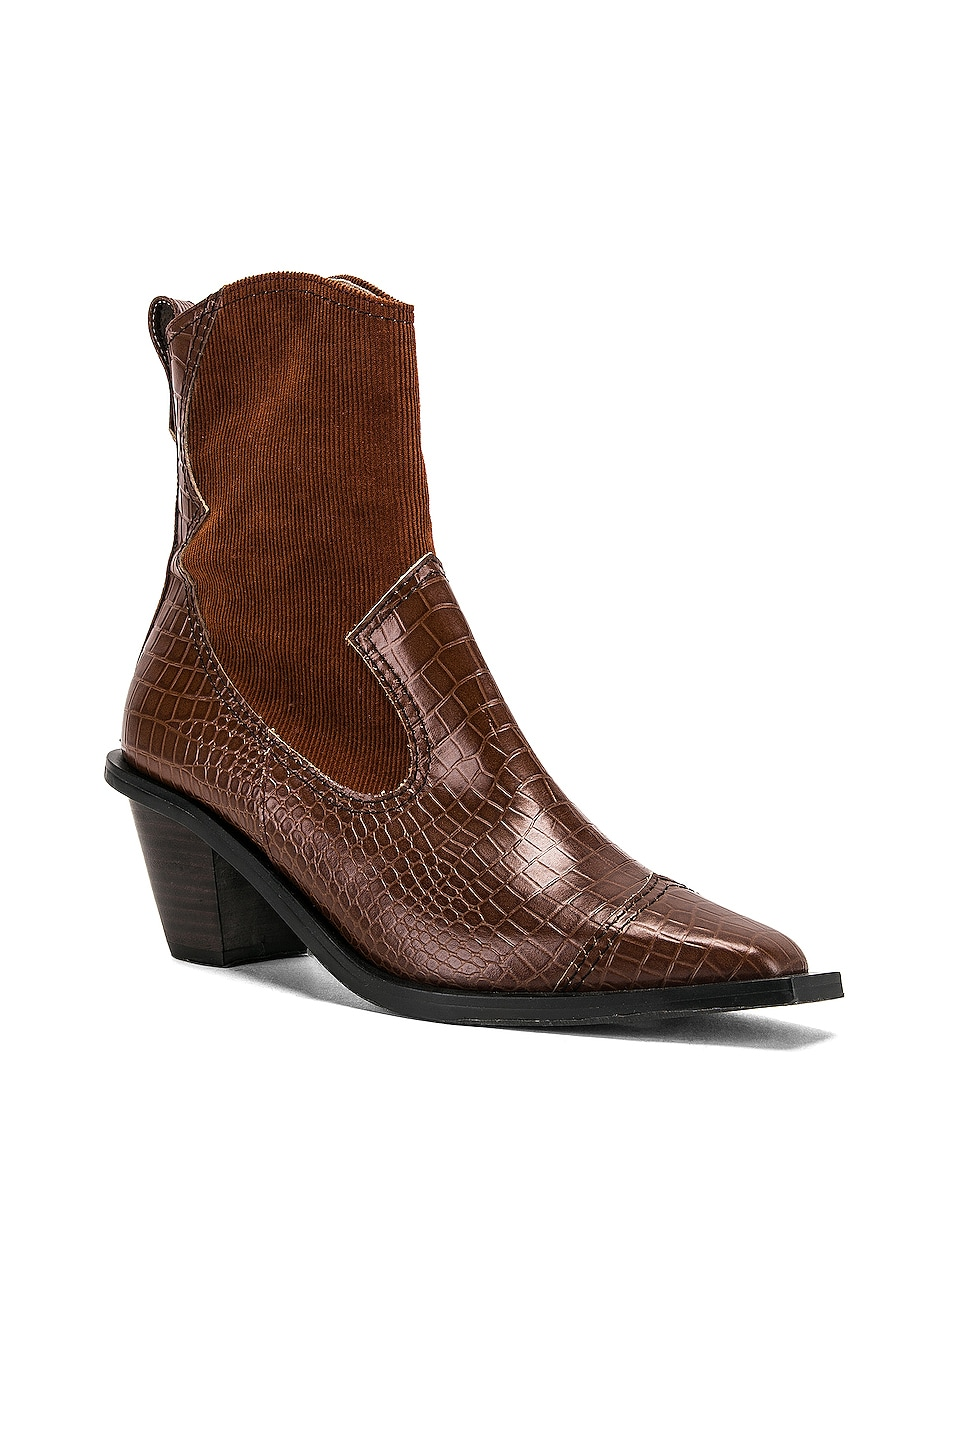 Image 2 of Reike Nen Western Wave Boots in Brown